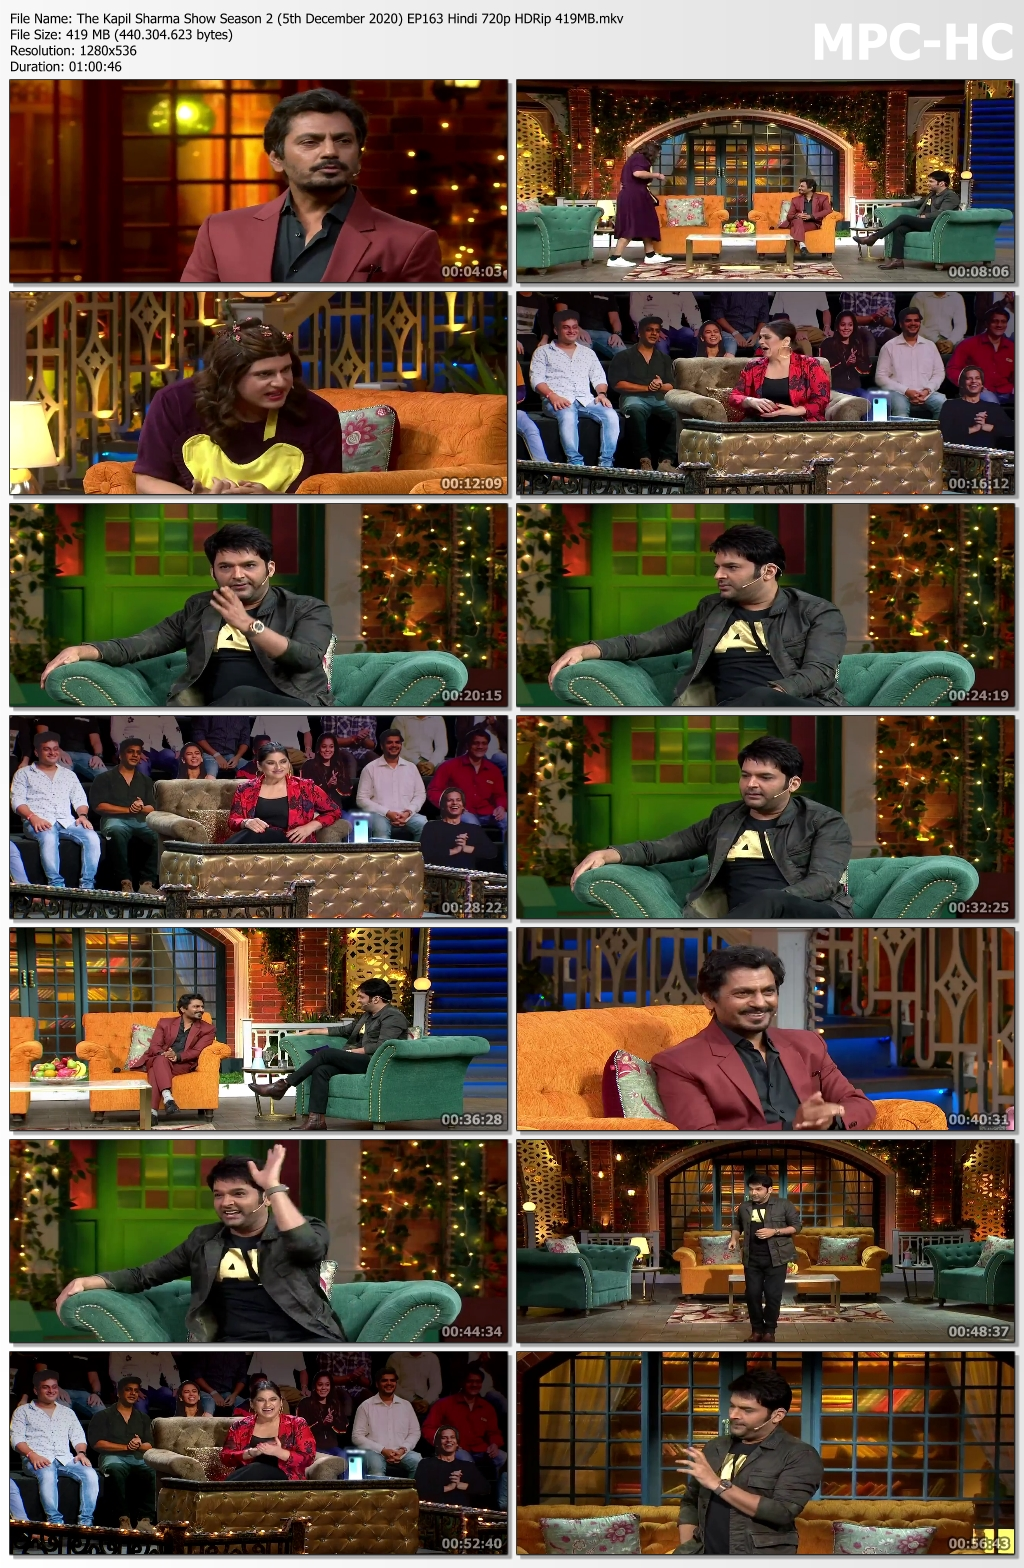 The-Kapil-Sharma-Show-Season-2-5th-December-2020-EP163-Hindi-720p-HDRip-419-MB-mkv-thumbs